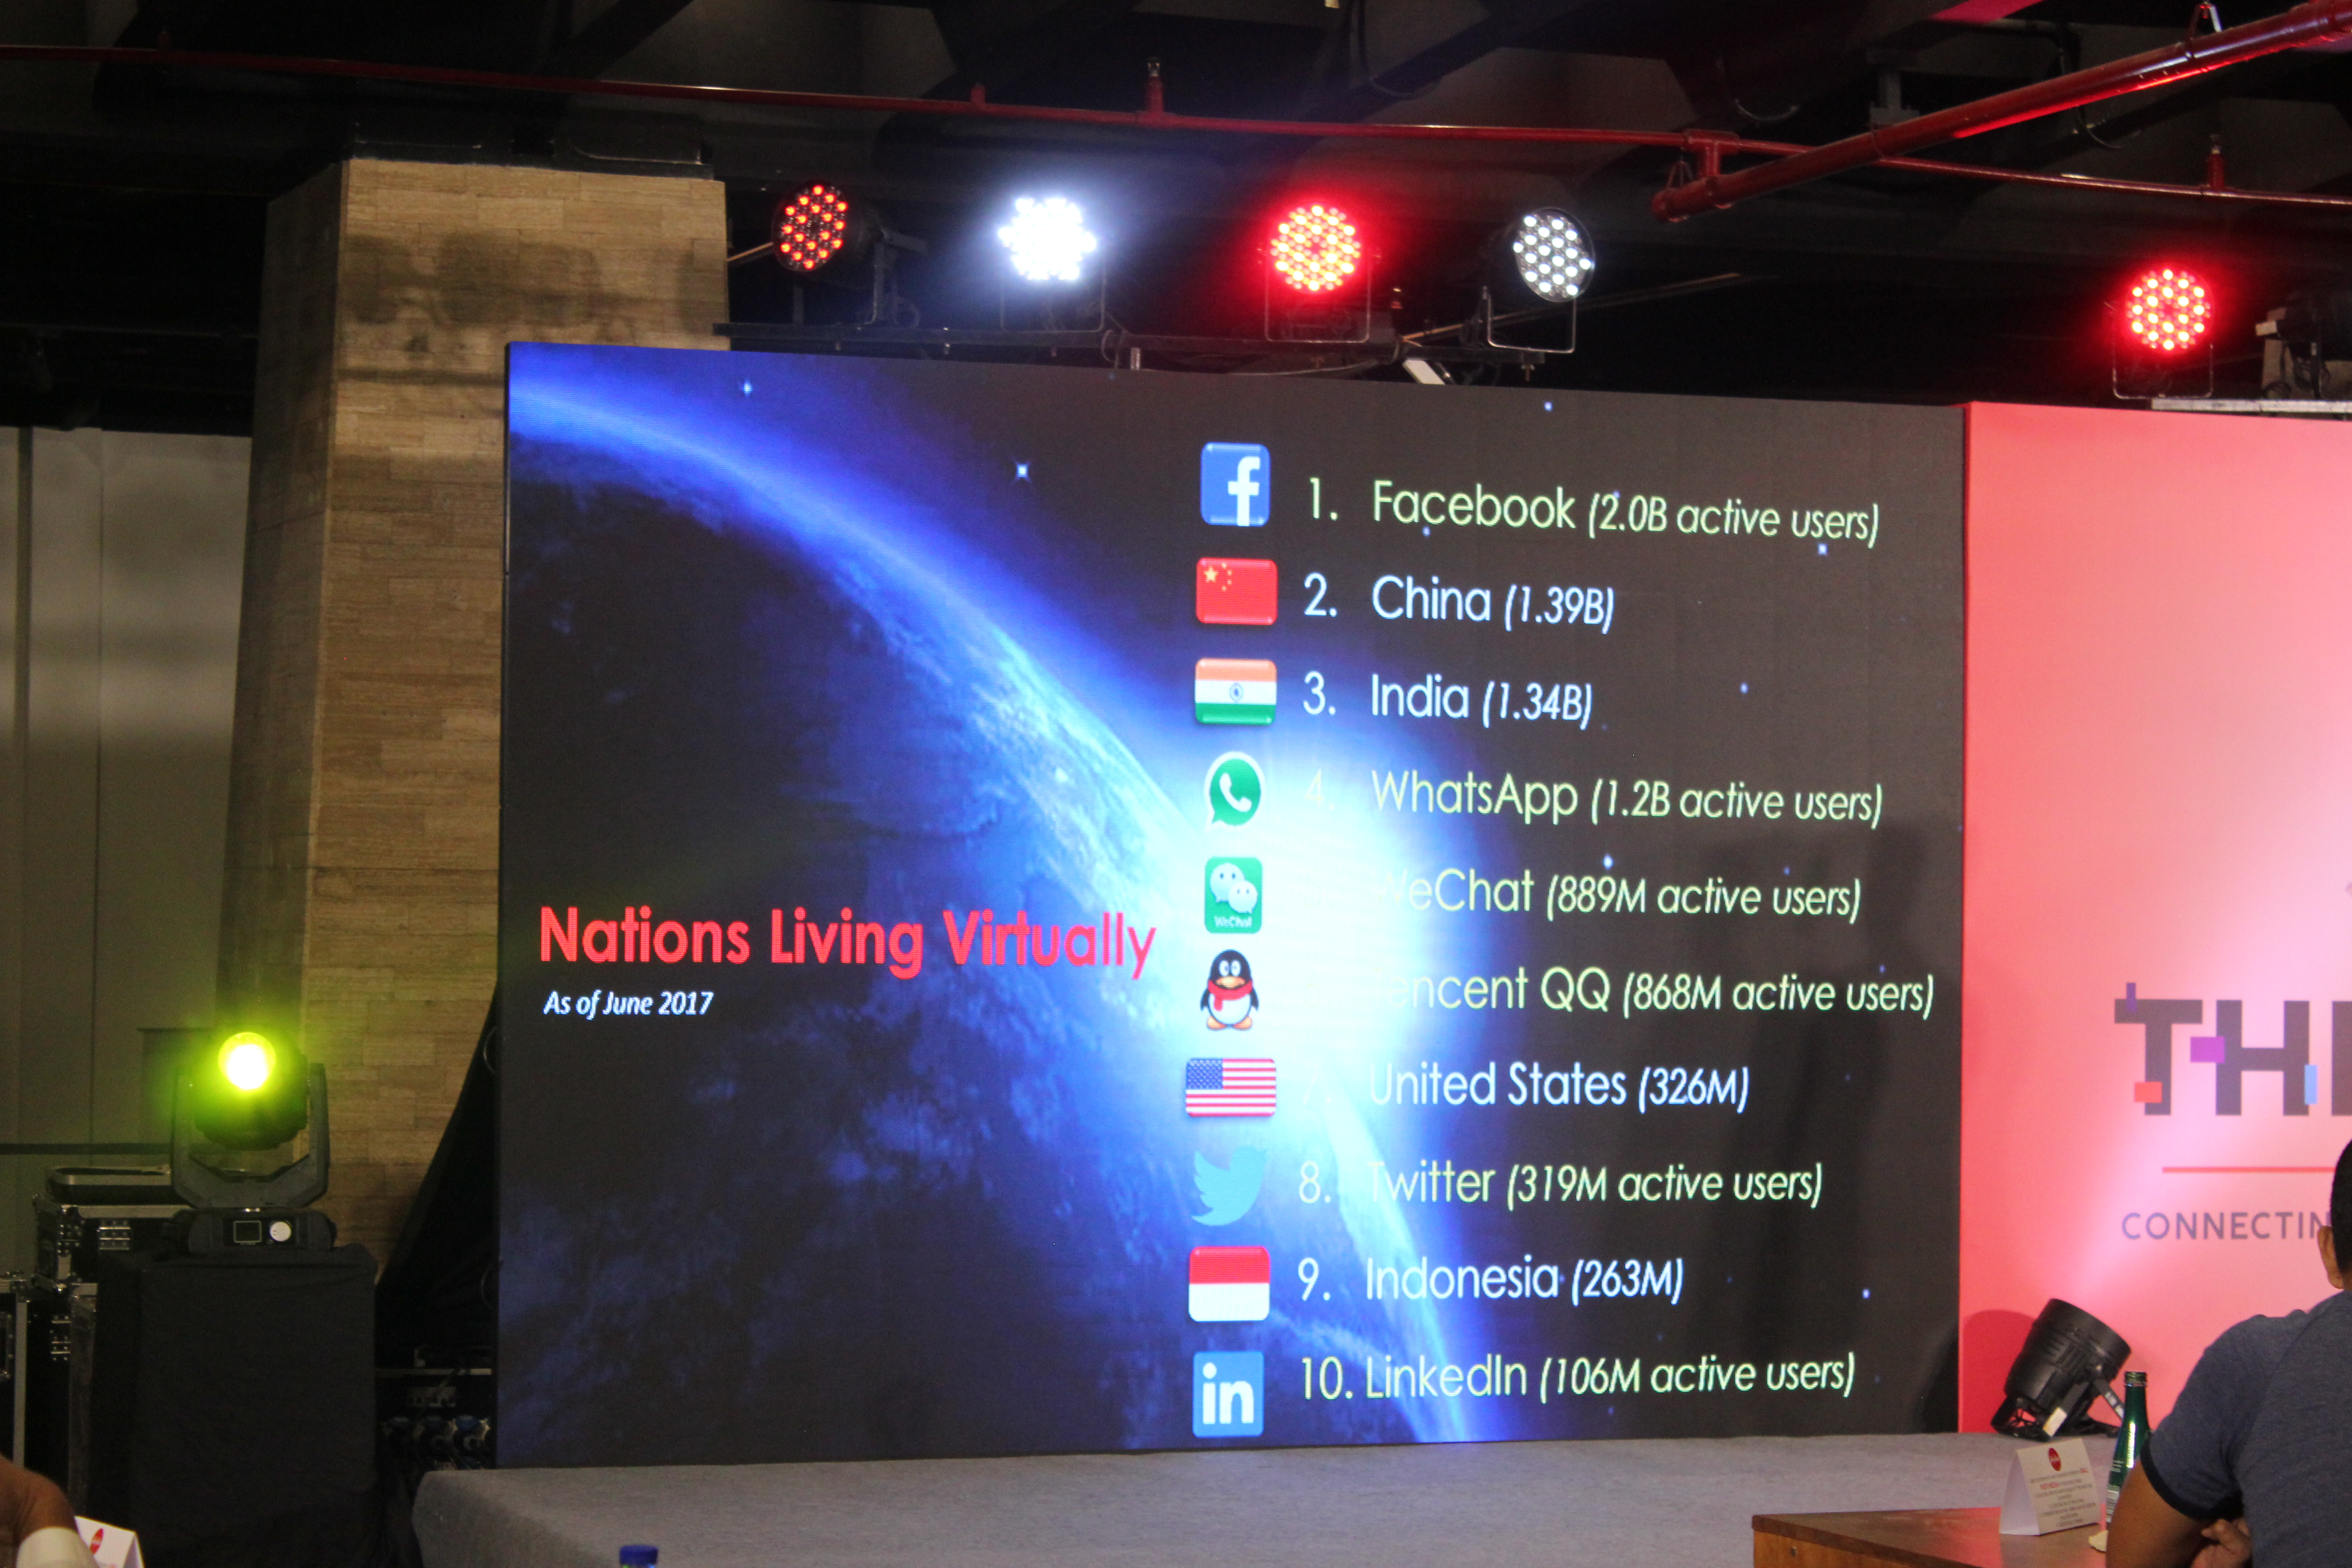 "Facebook remains to be the biggest ""nation"" in the world with 2 billion active users."